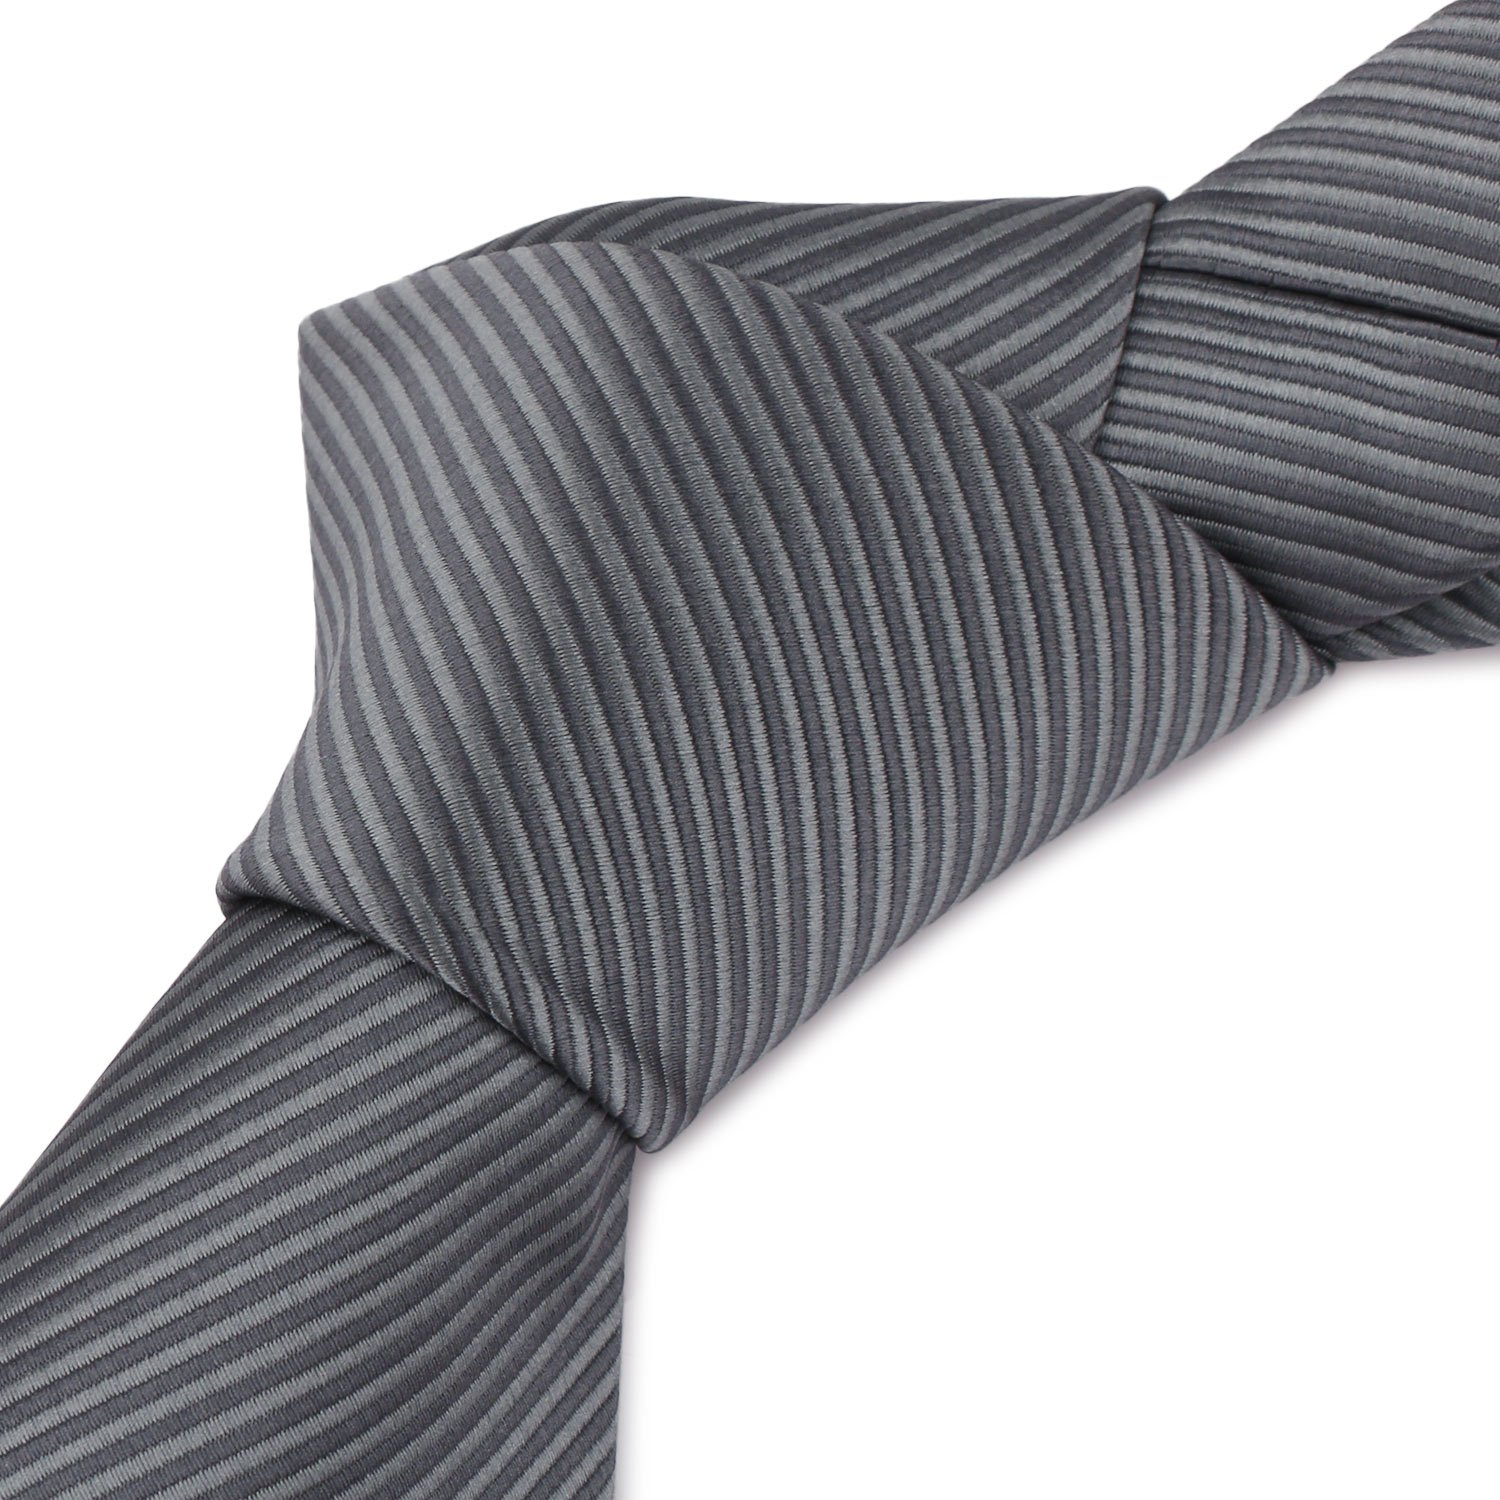 Mens Necktie Classic Striped Neckties, 54'' Long Polyester Solid Grey Neck Tie, Seasonless Formal Casual Business Necktie by Segbeauty (Image #7)